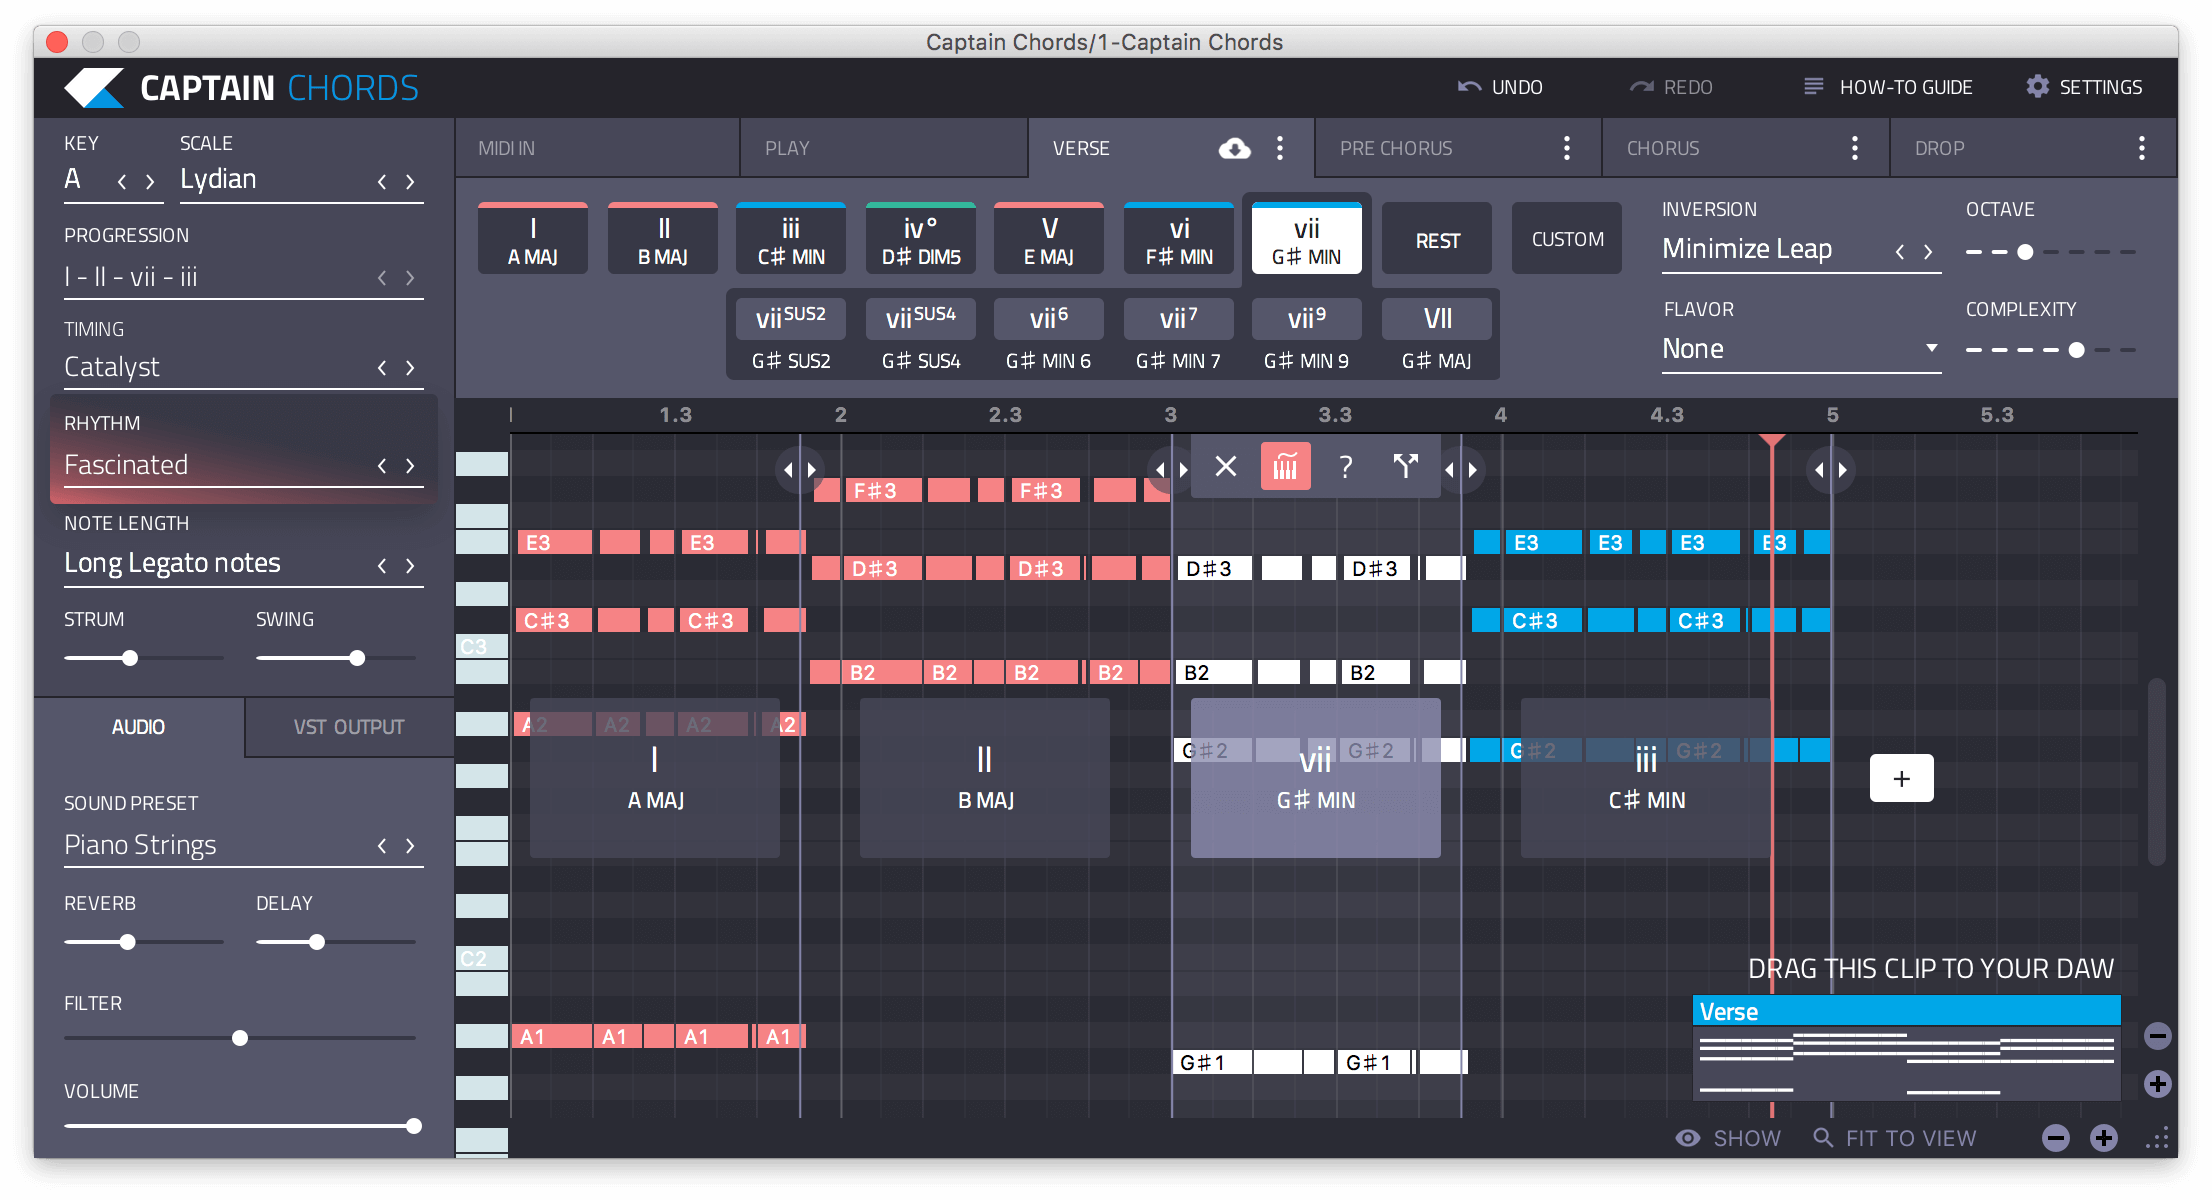 Captain Chords 20 Chord Progression Software Vst Plugin Sound Developing System Diagrams As A Useful Road Map Pro Web Plugins Write Progressions In Your Favorite Daw